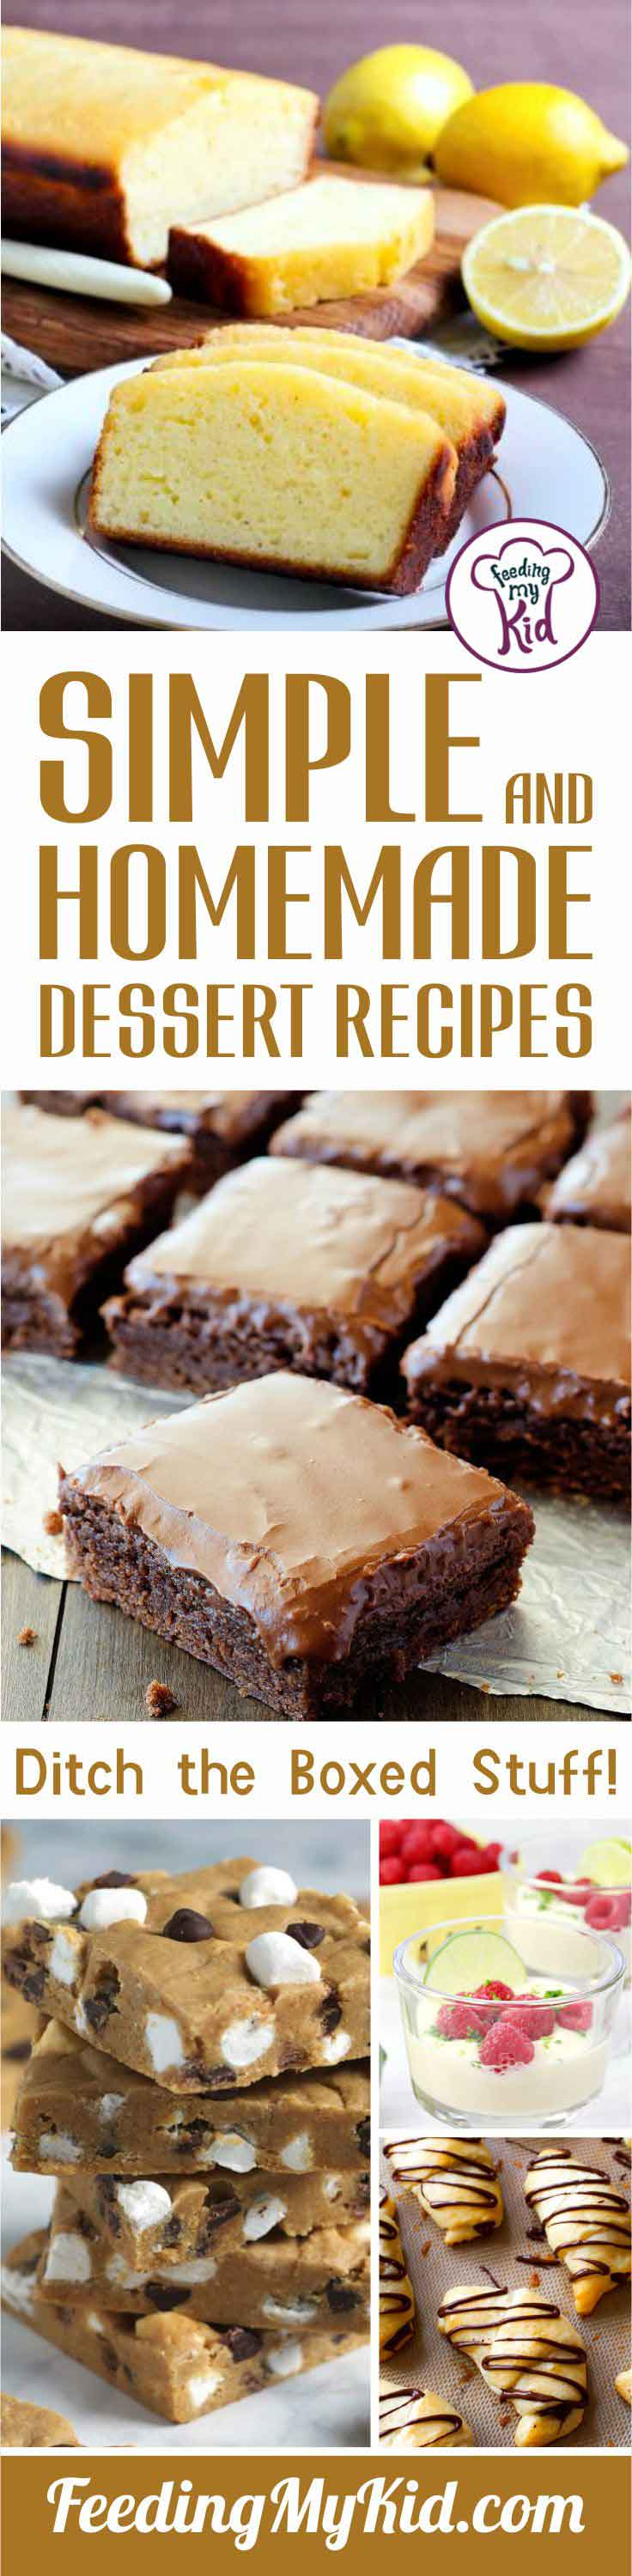 Desserts that take hours to make are bothersome and boxed desserts are filled with tons of preservatives. These homemade, simple dessert recipes are better!